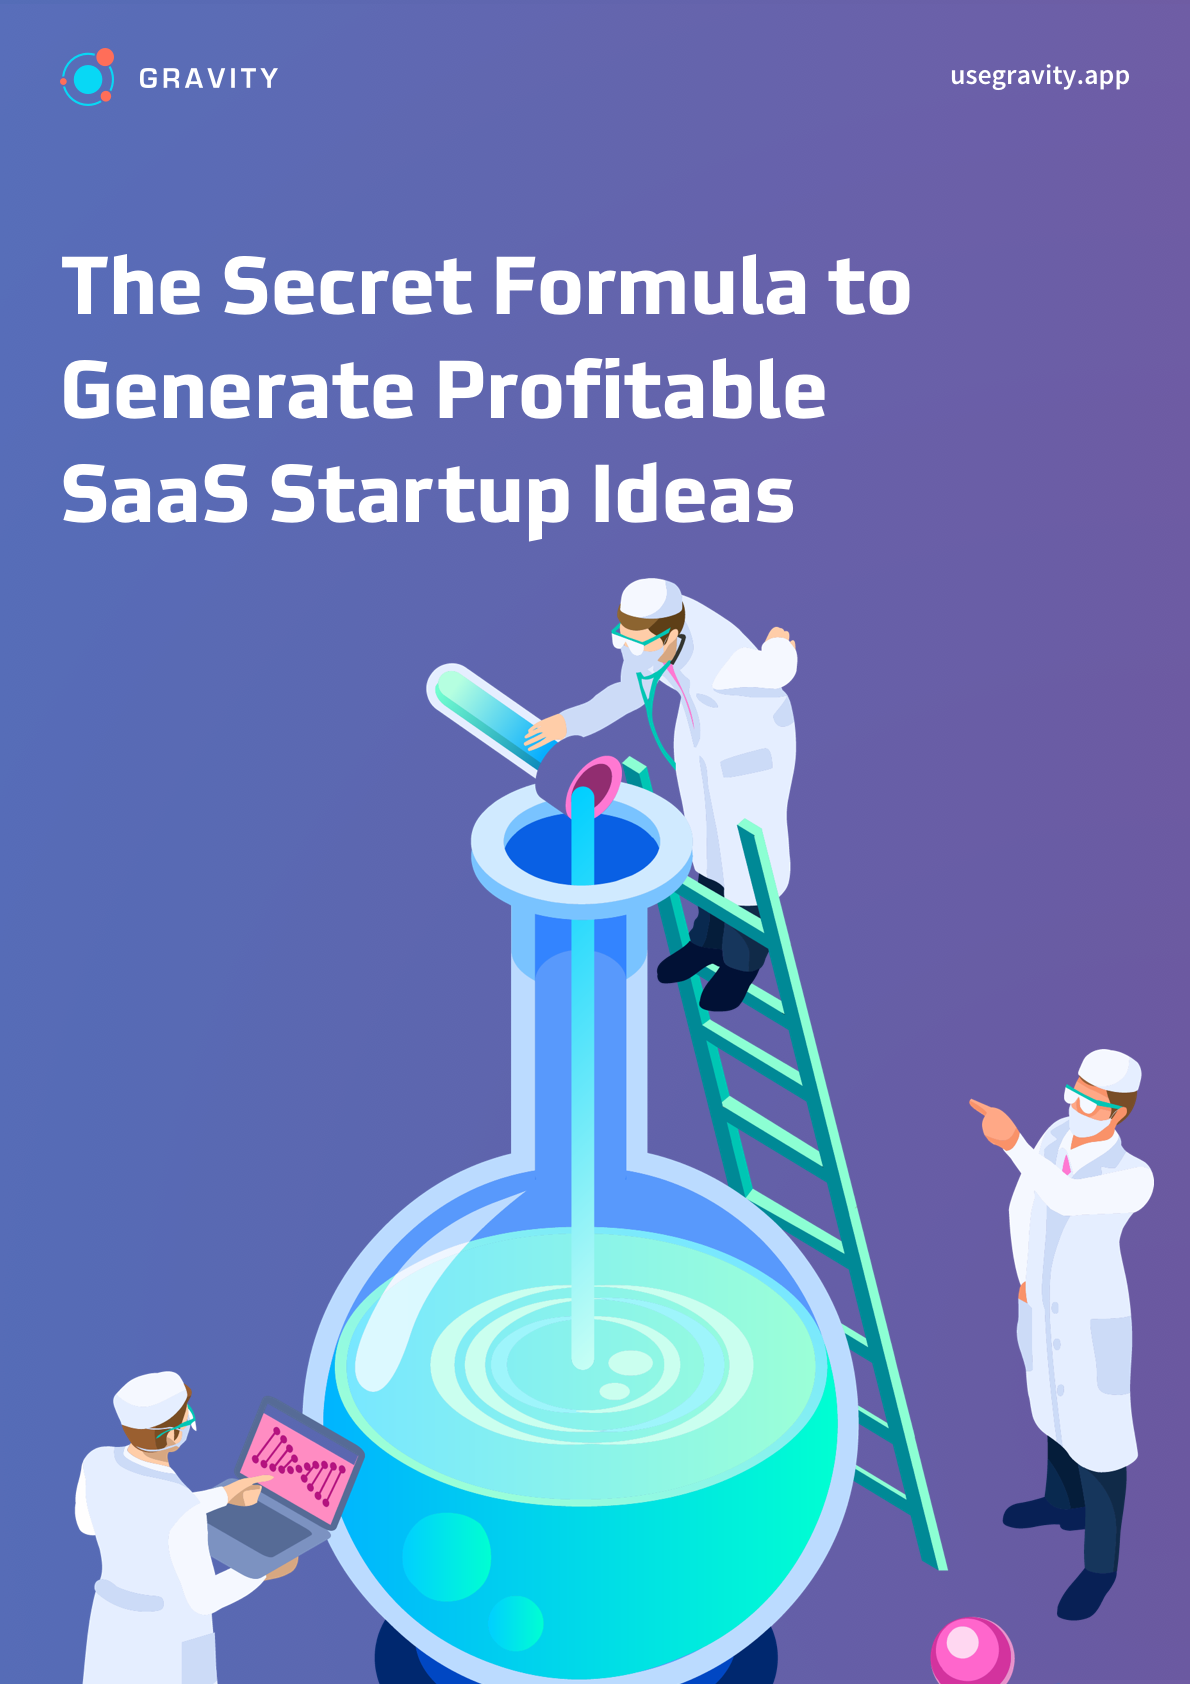 The Secret Formula to Generate Profitable SaaS Startup Ideas